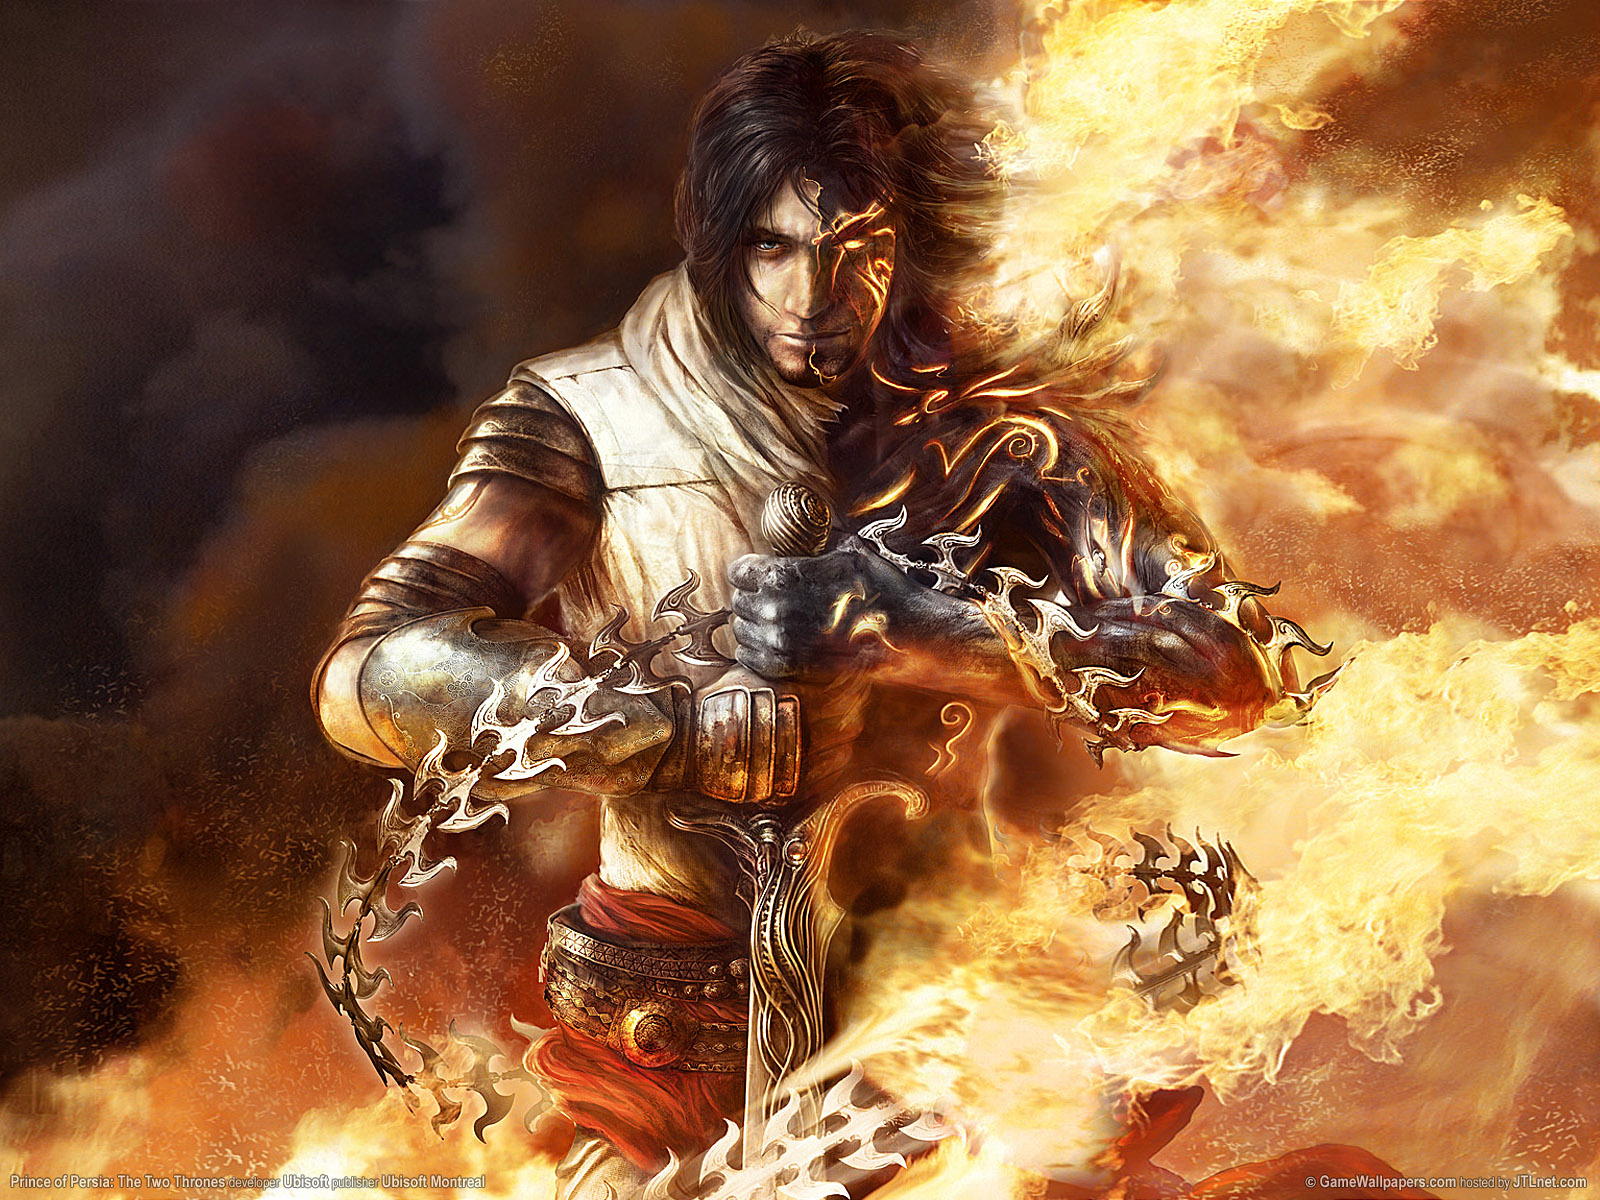 74 Prince Of Persia The Two Thrones Wallpaper On Wallpapersafari